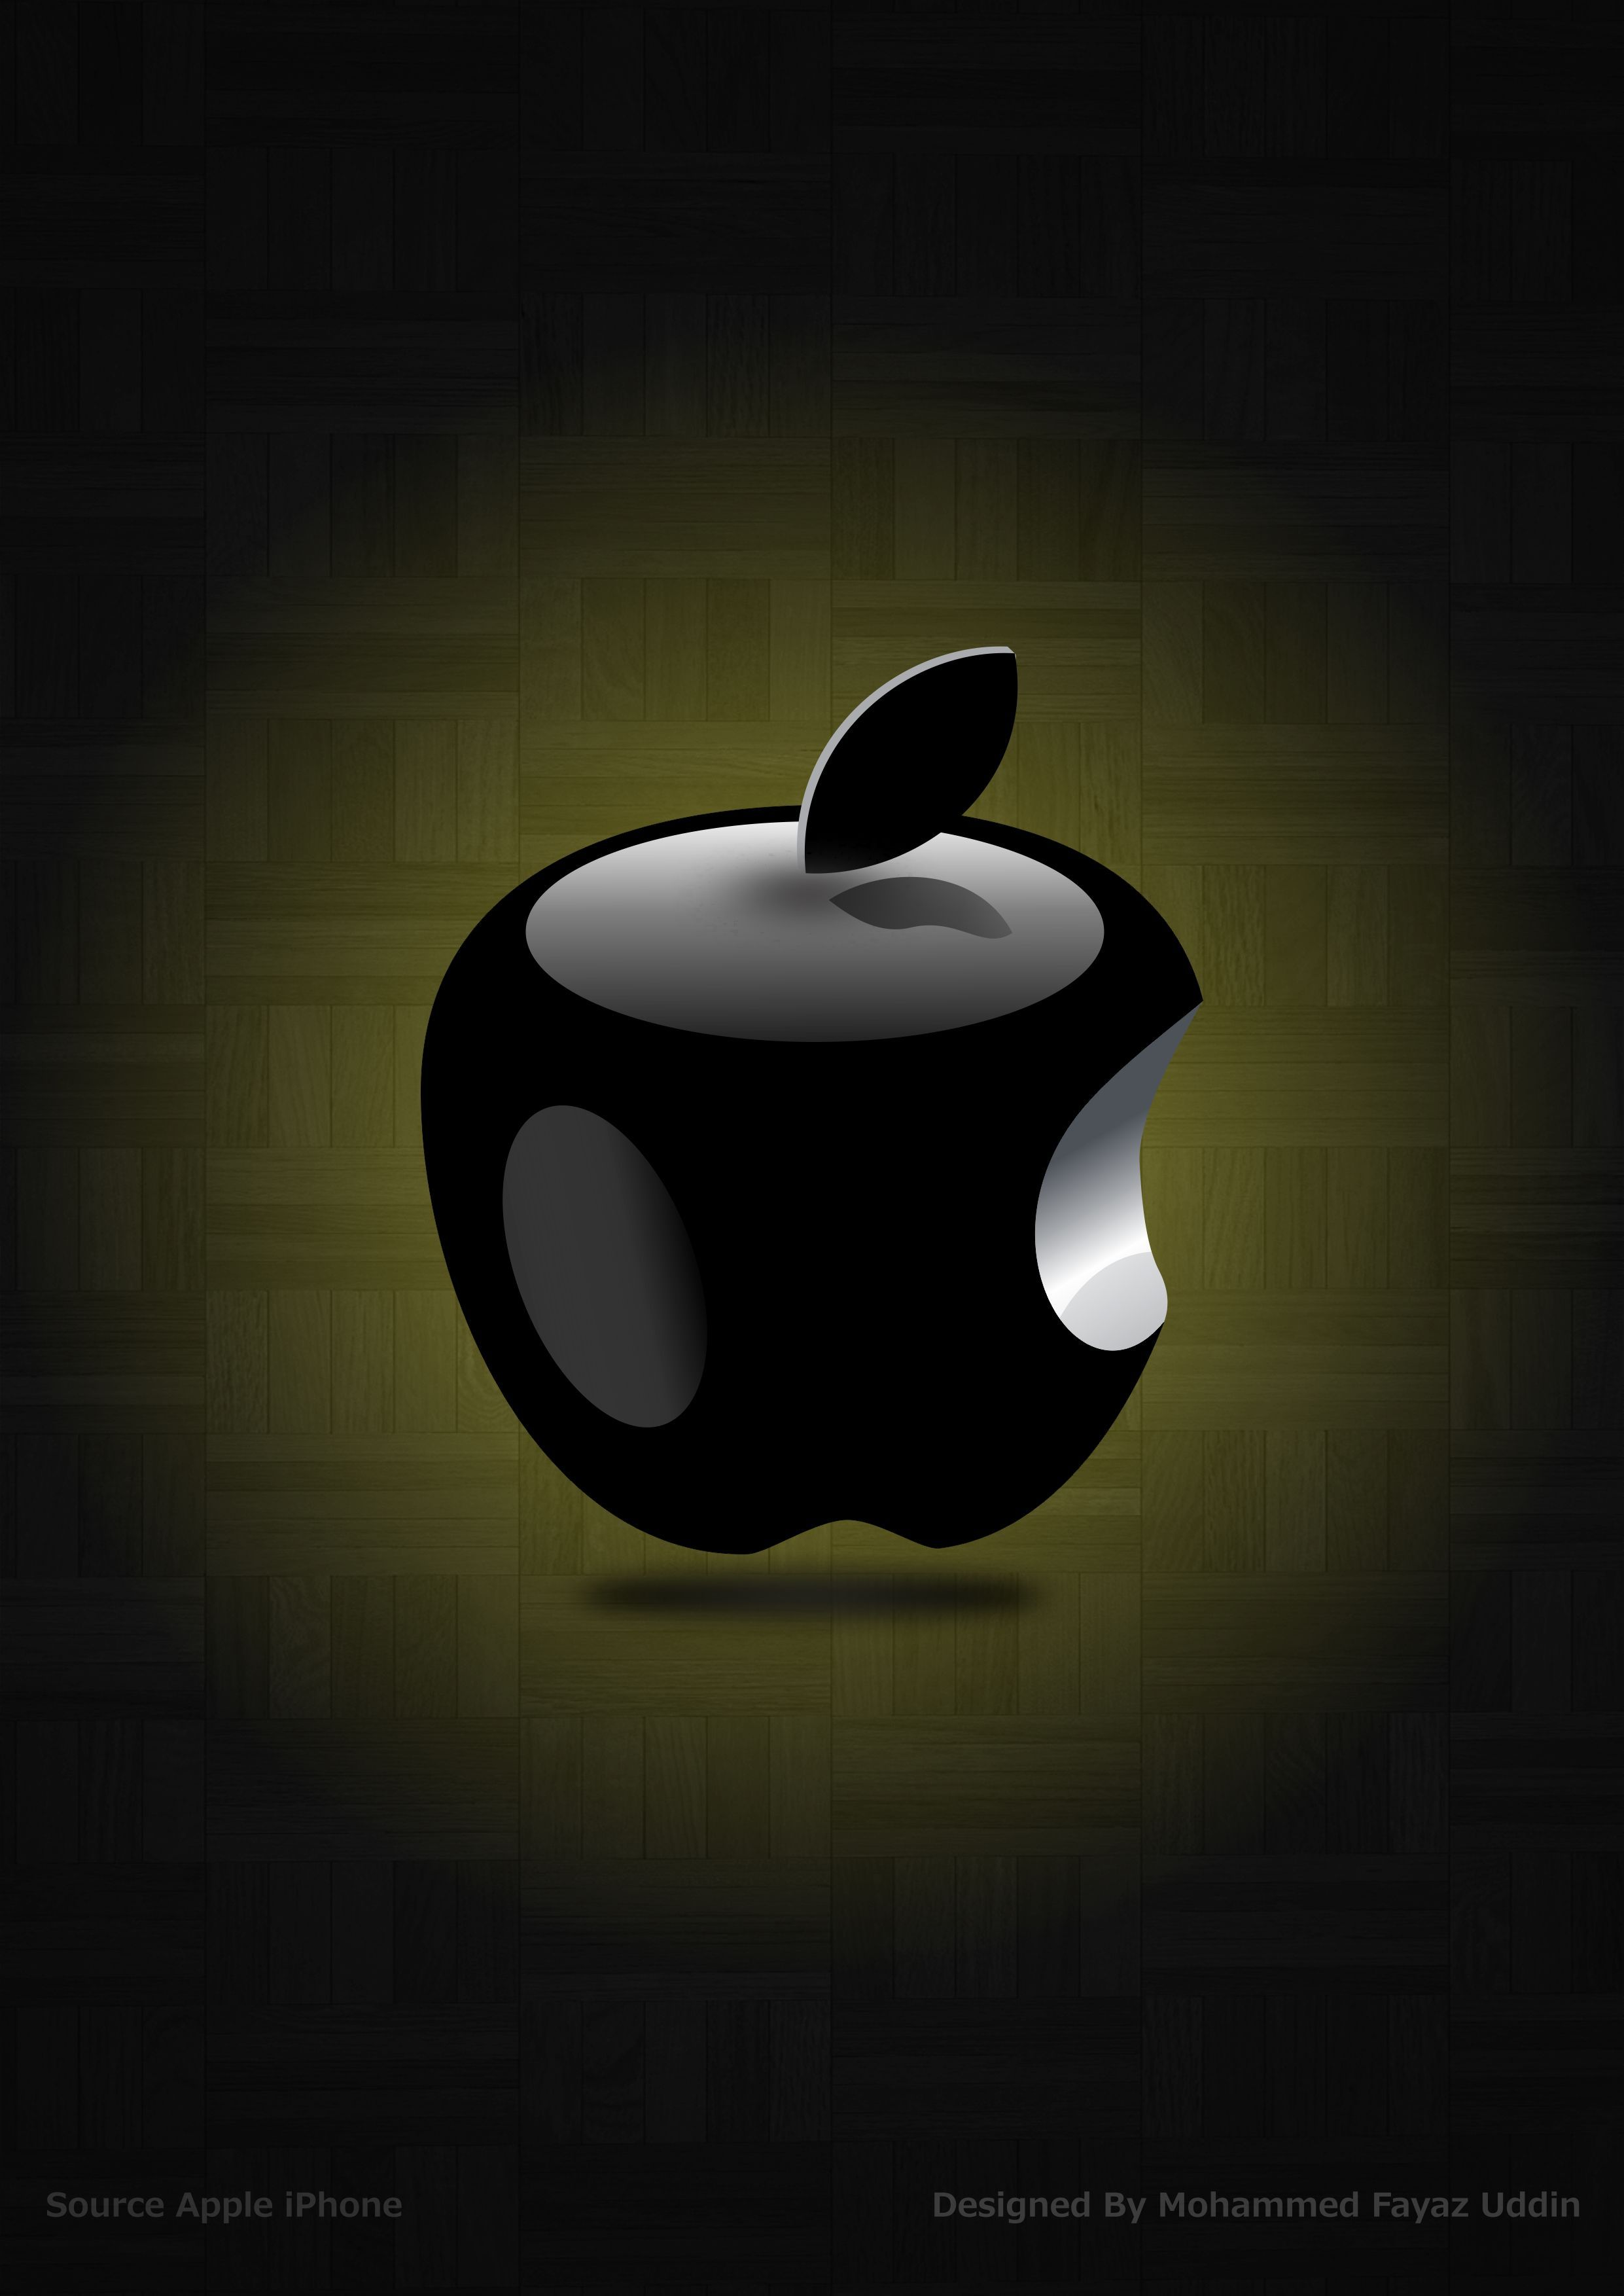 Awesome Apple 3d Touch Wallpaper Apple Logo Wallpaper Iphone Apple Wallpaper Iphone Apple Logo Wallpaper